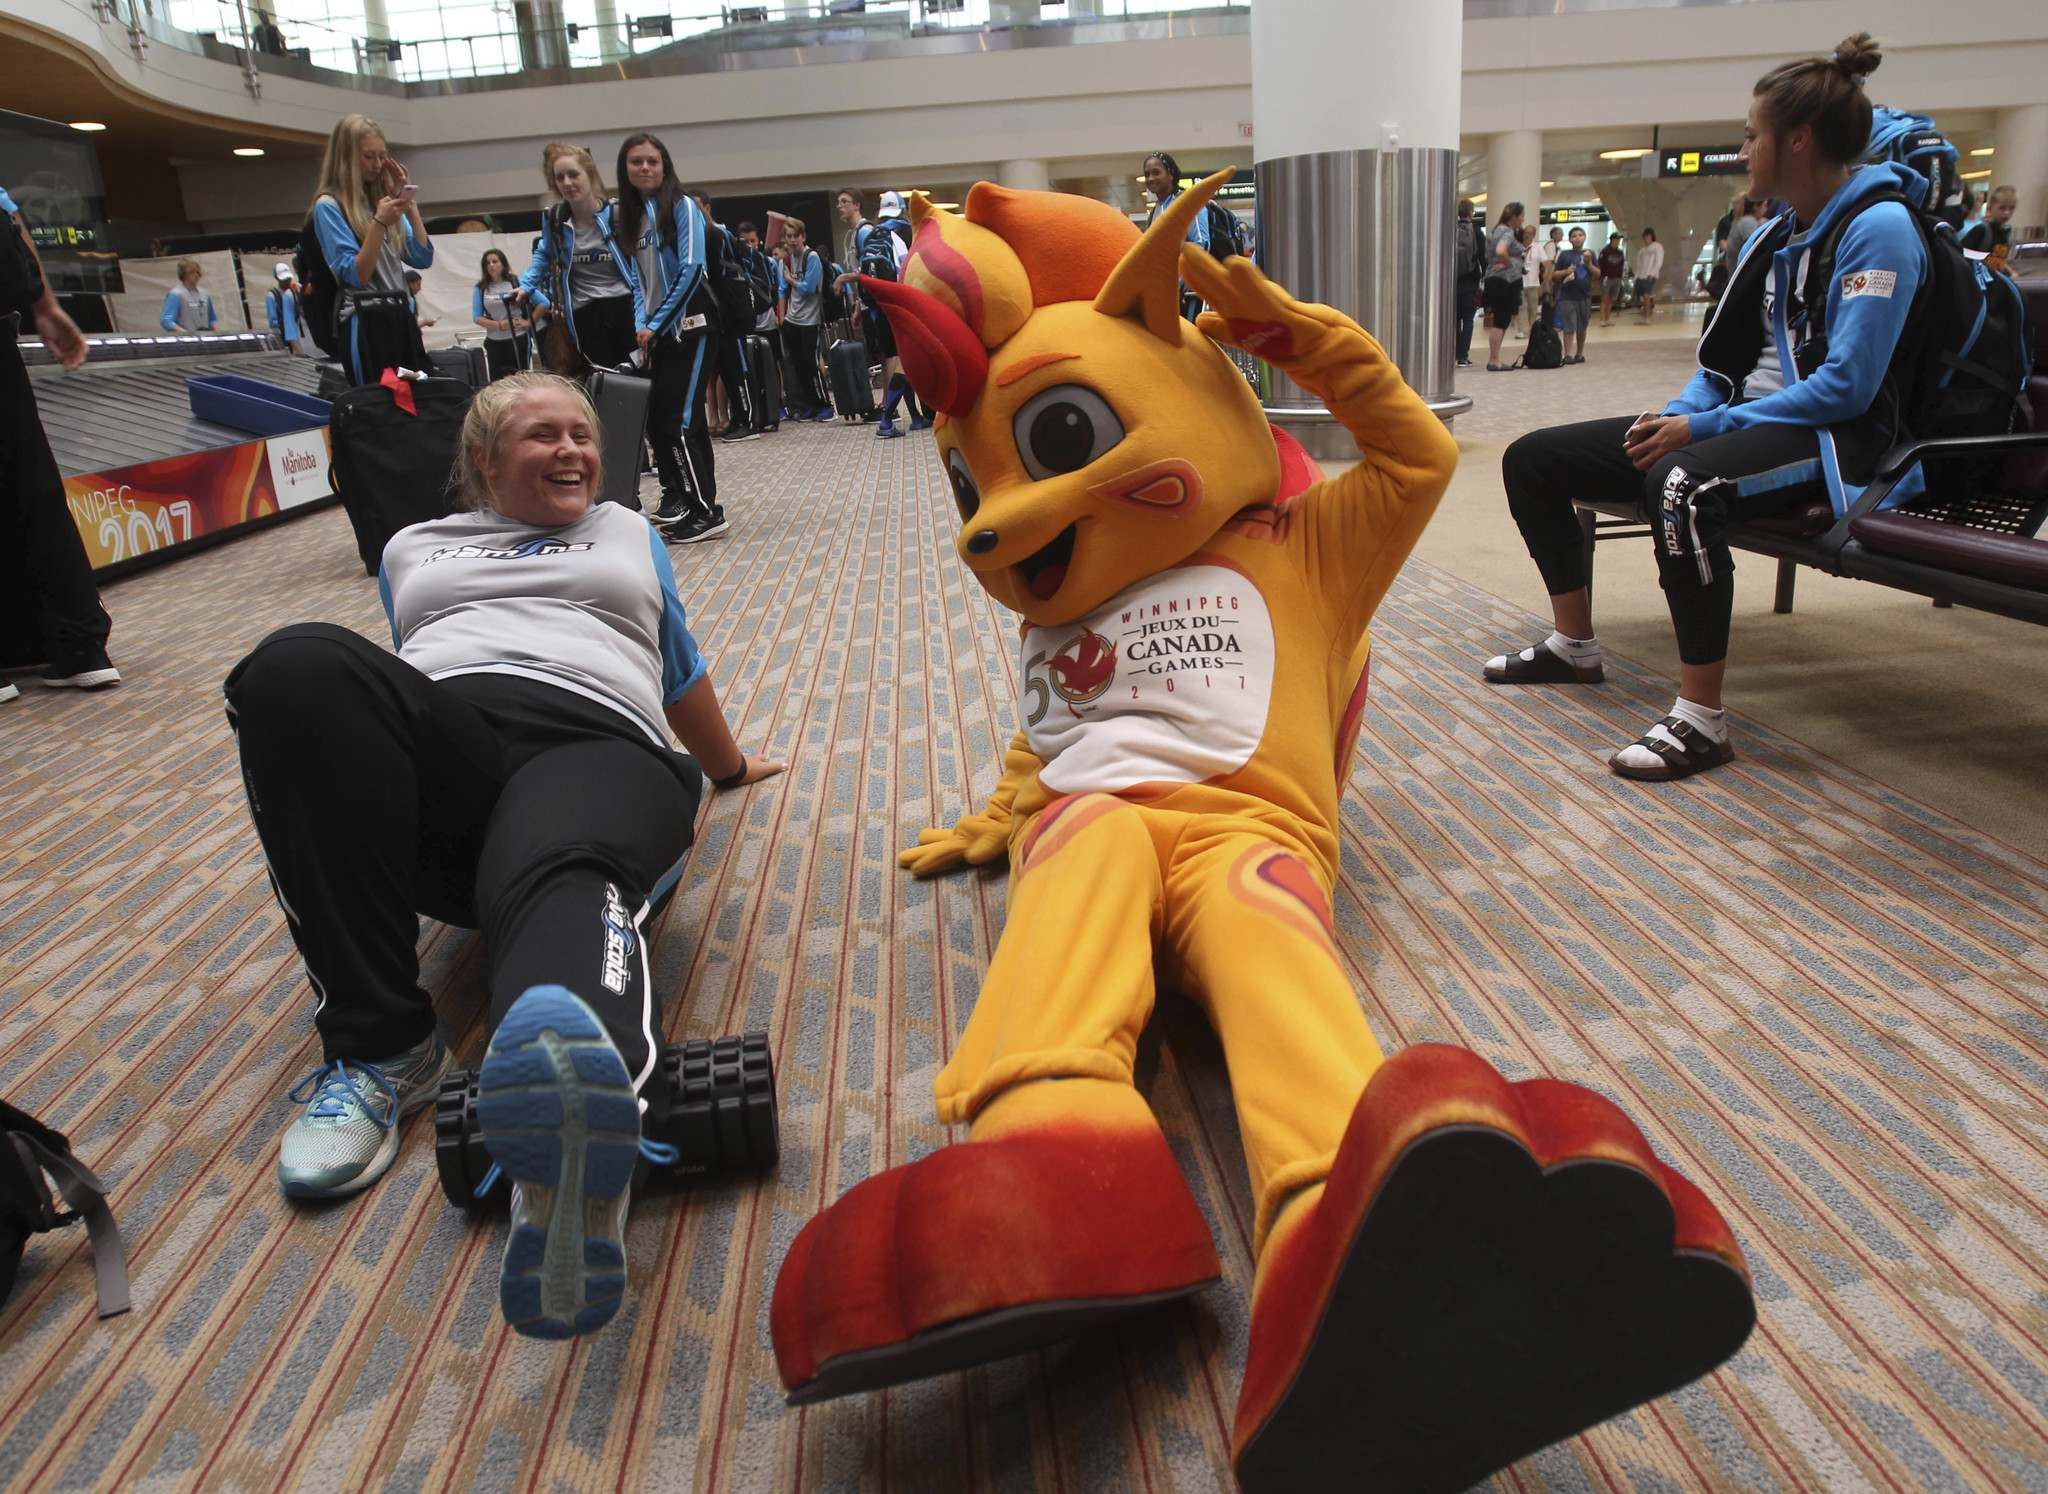 JOE BRYKSA / WINNIPEG FREE PRESS</p><p>Team Nova Scotia track and field athlete Taylor Stutely, 21, does some stretches with Canada games mascot Niibin as team Nova Scotia athletes arrive in Winnipeg.</p>